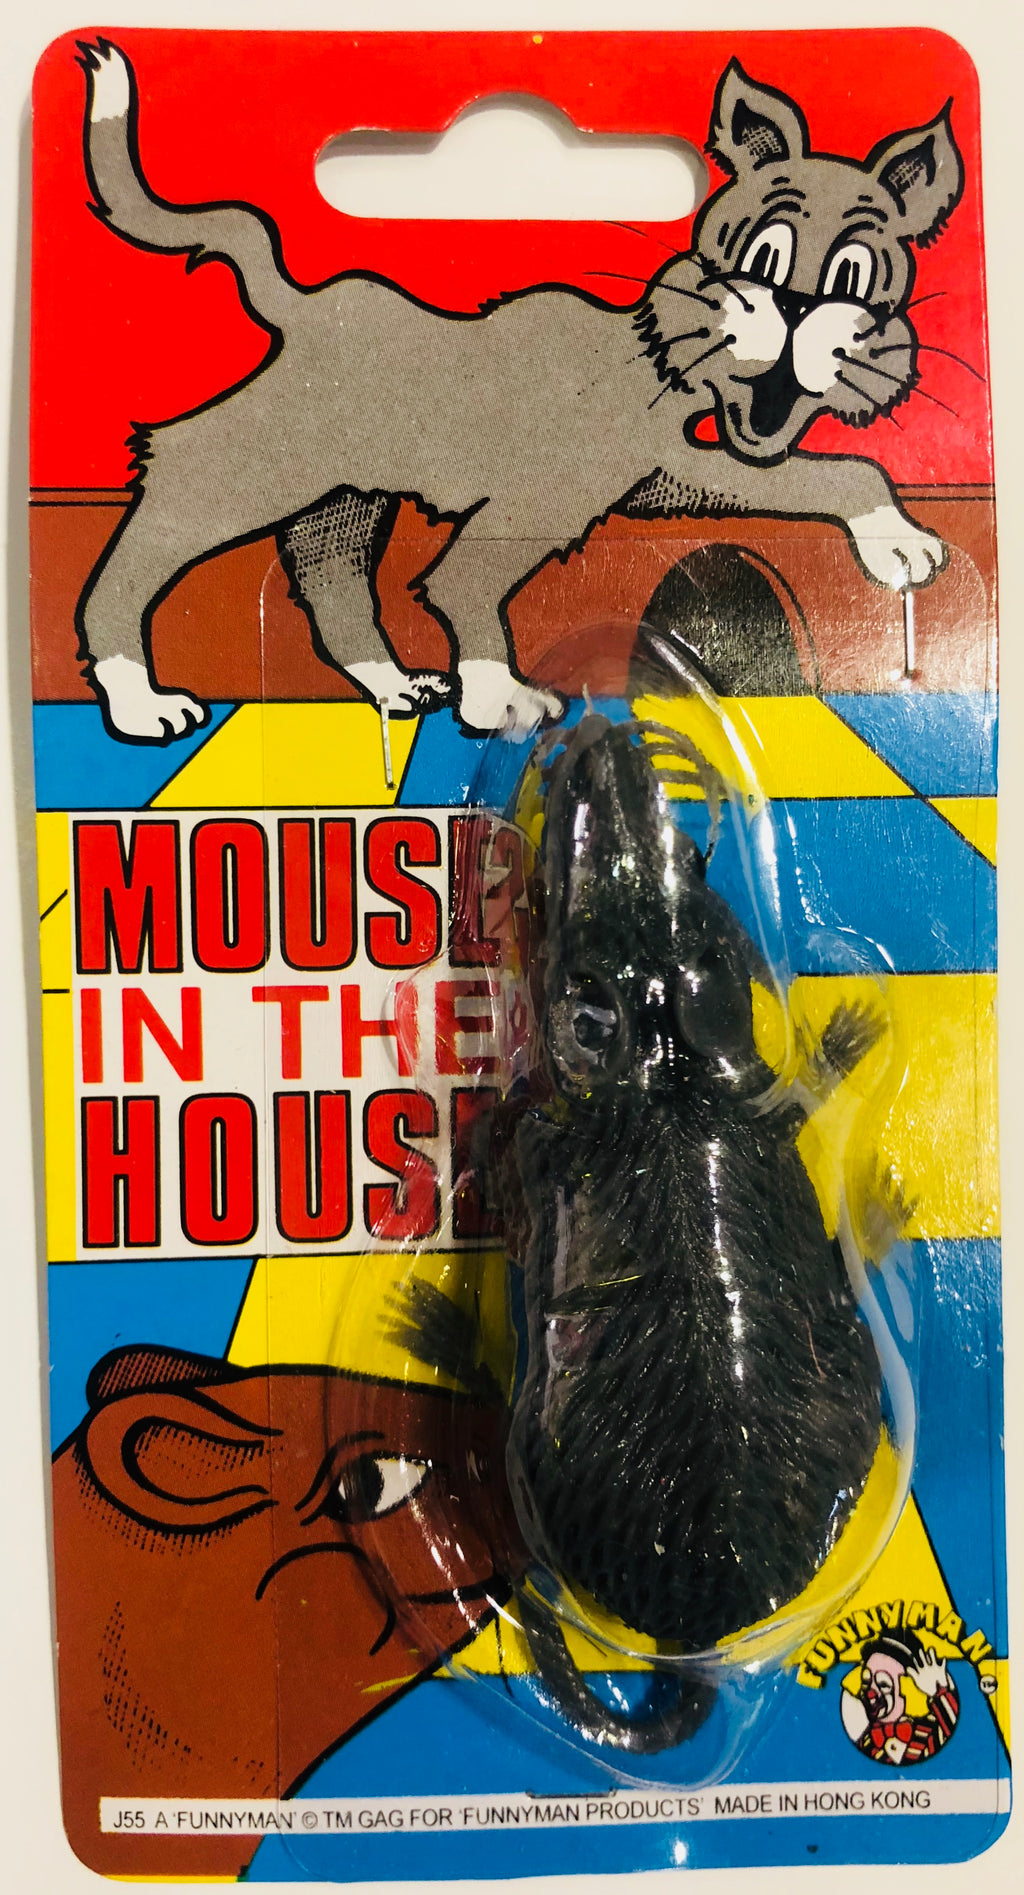 JT0553 - Mouse in the House